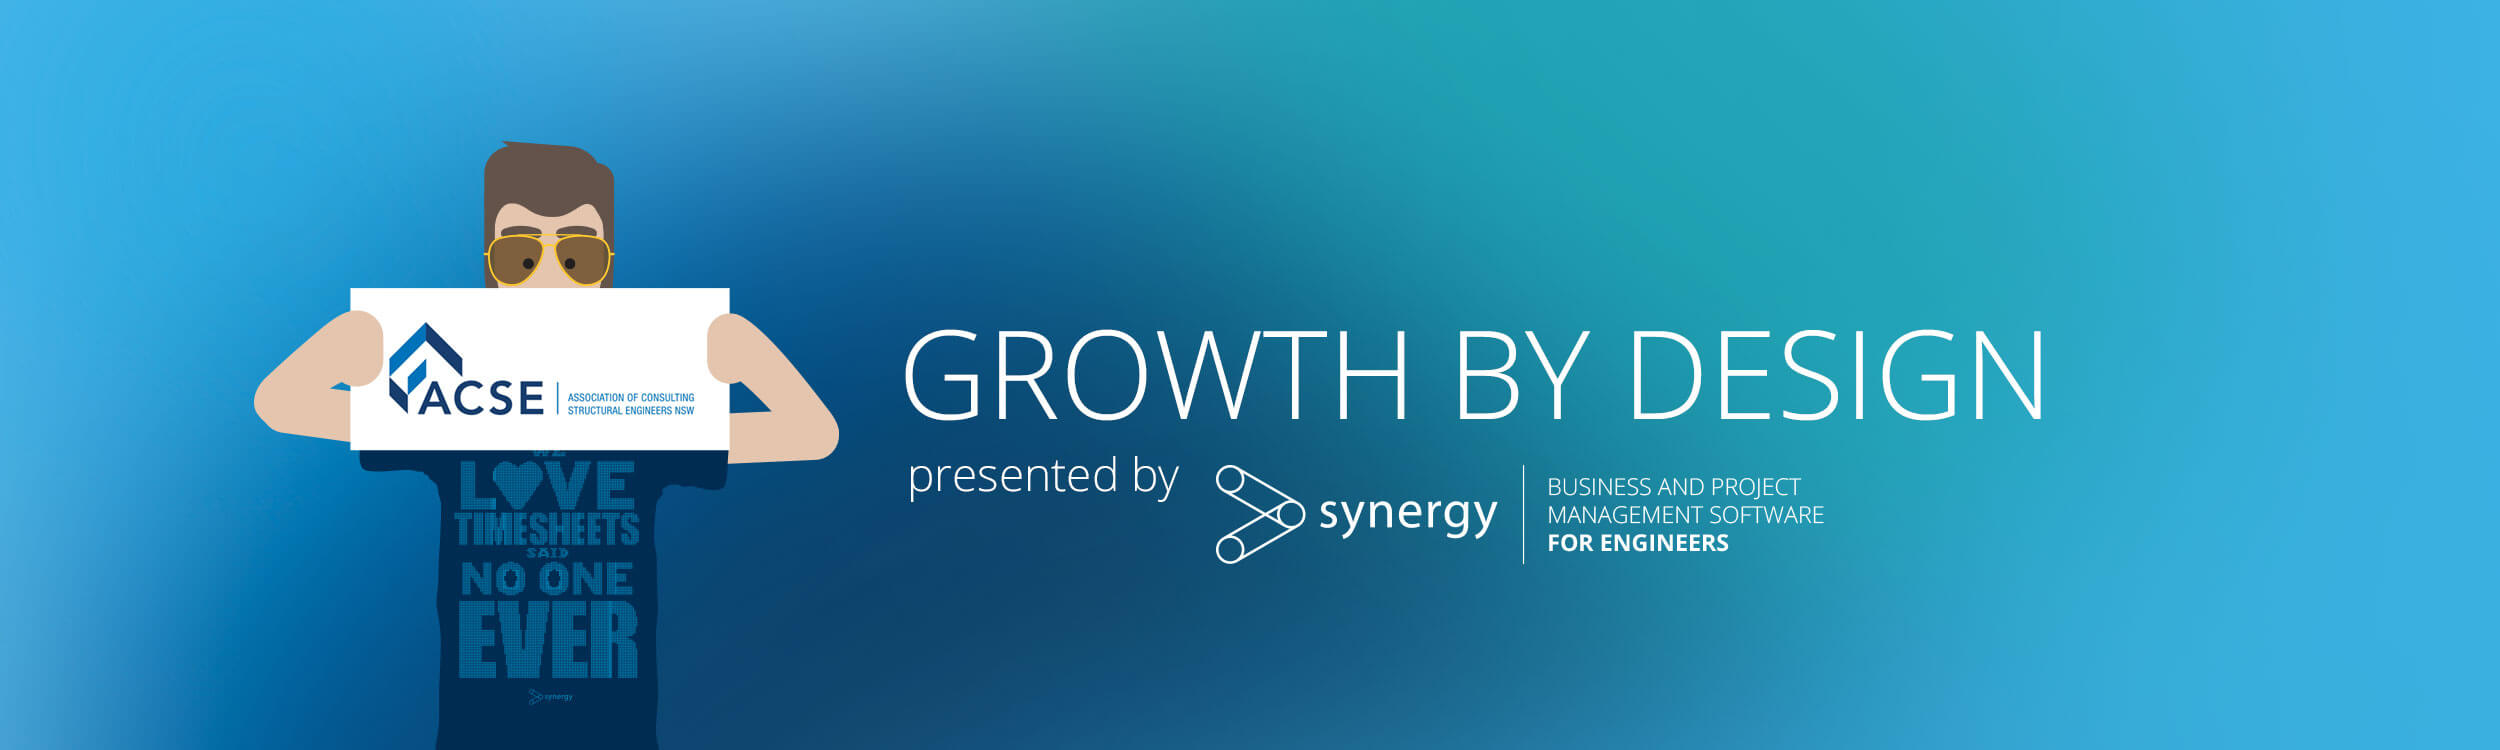 Total Synergy with ACSE - Growth by Design